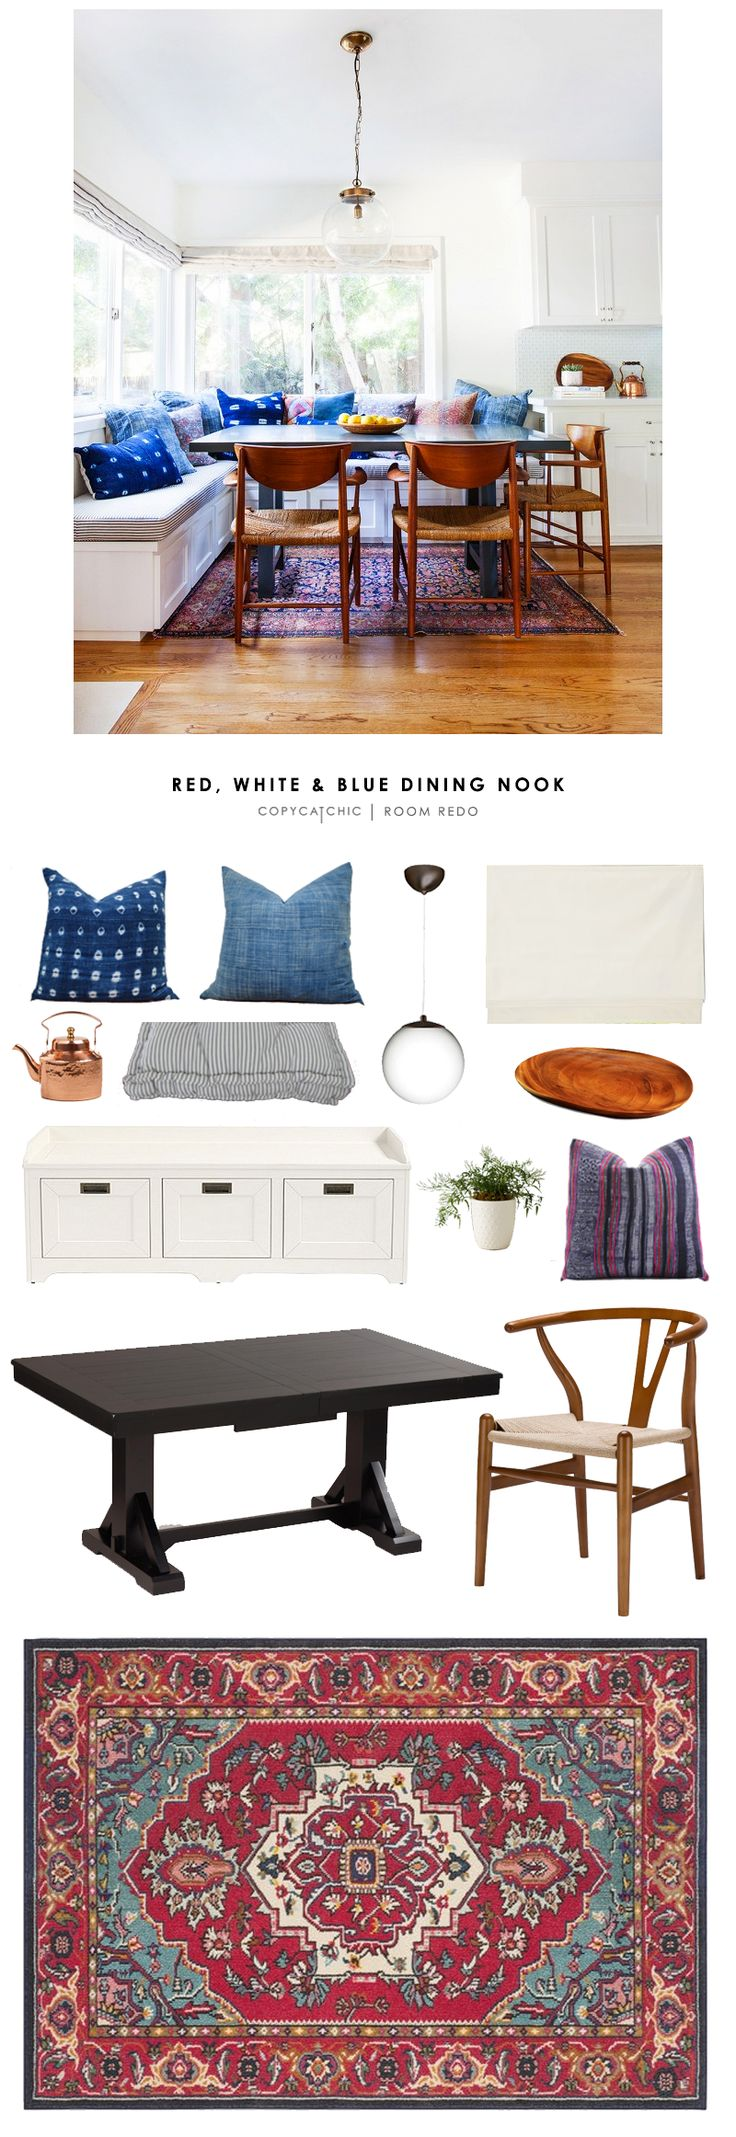 Copy cat chic room redo red white and blue dining nook for How to redo your room for cheap